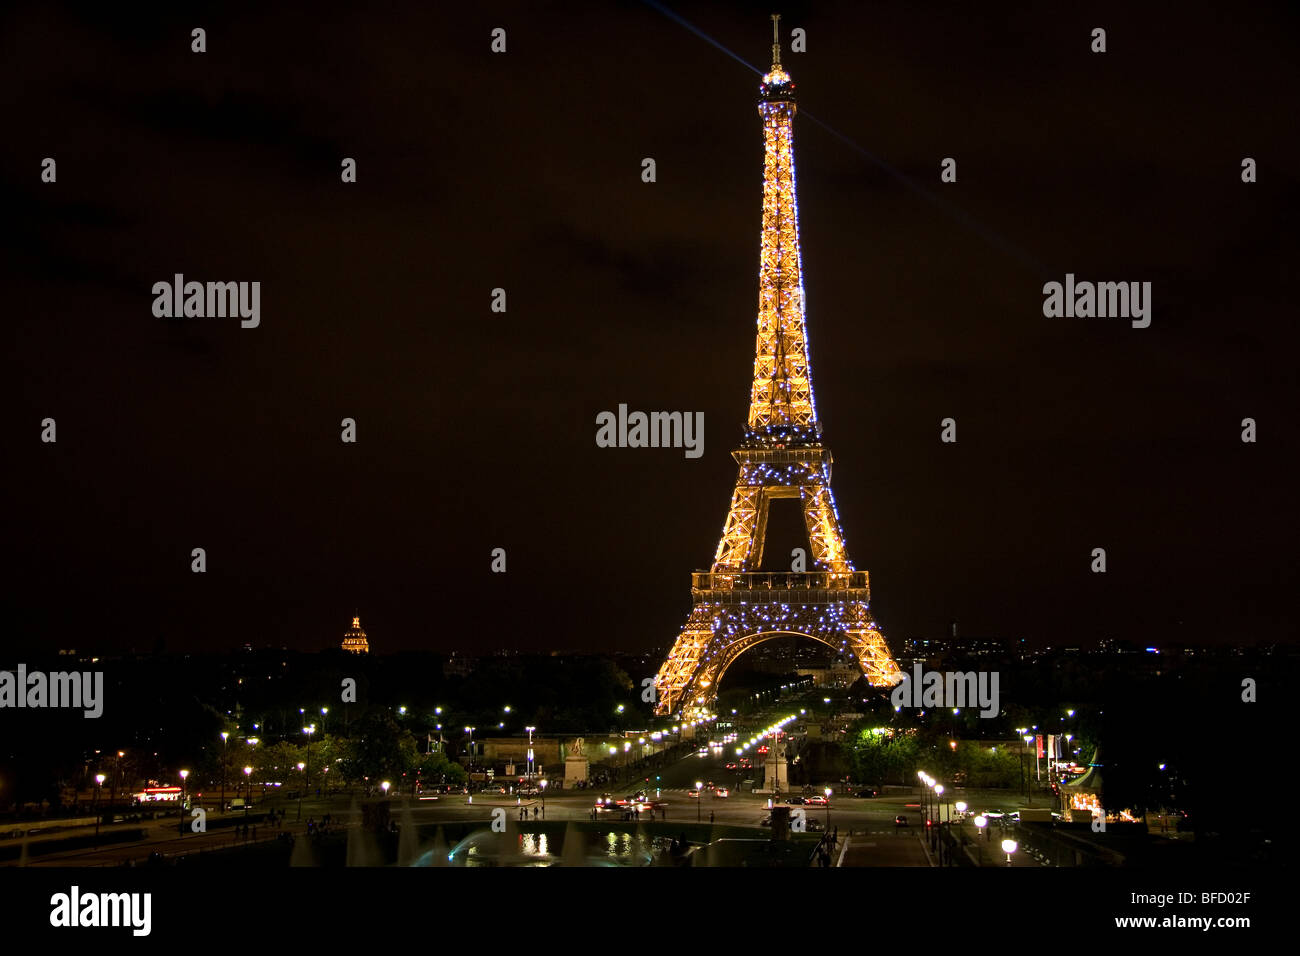 The Eiffel Tower lit up at night located on the Champ de Mars in Paris, France. - Stock Image